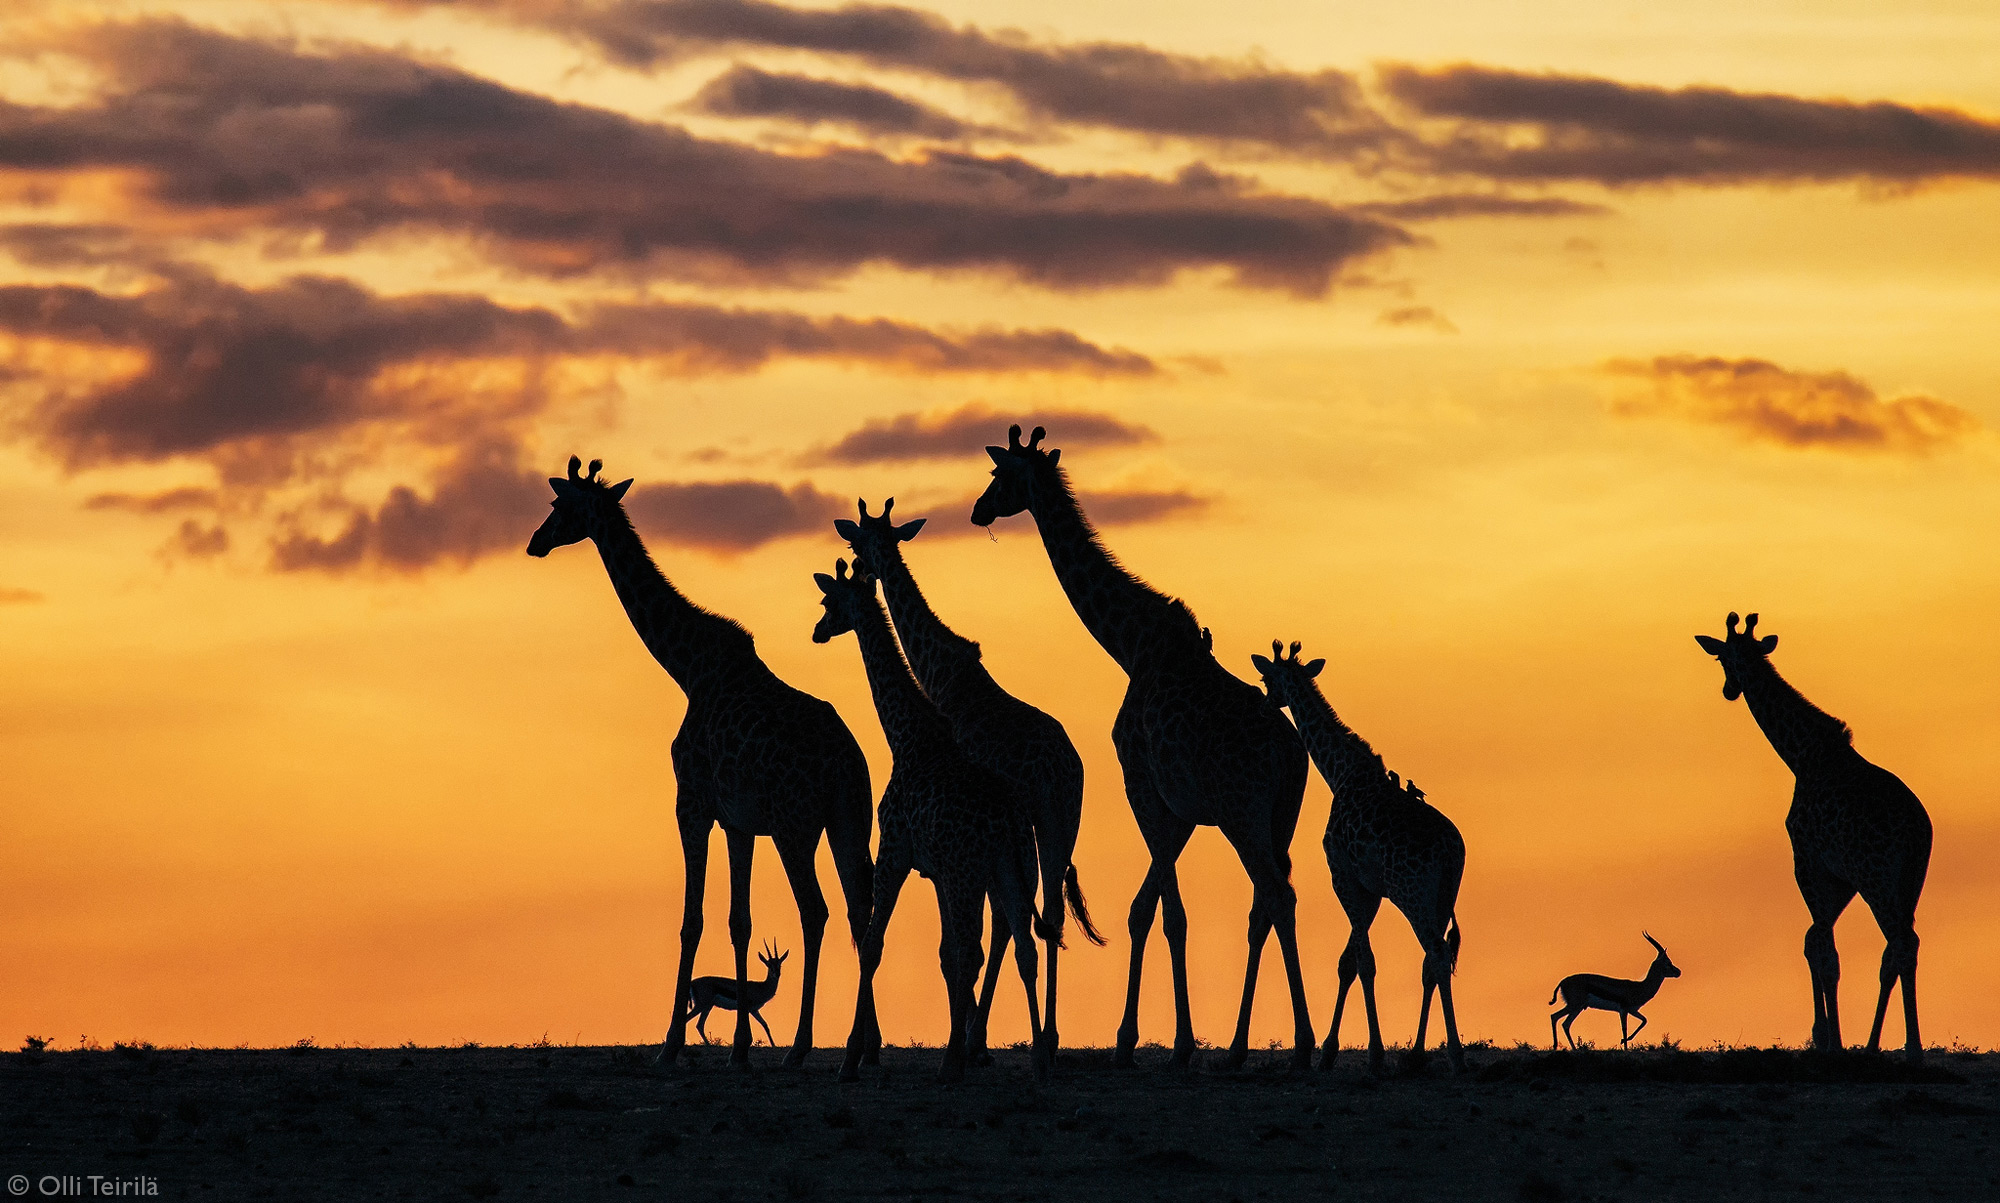 Sunset with giraffes in Maasai Mara National Reserve, Kenya © Olli Teirilä